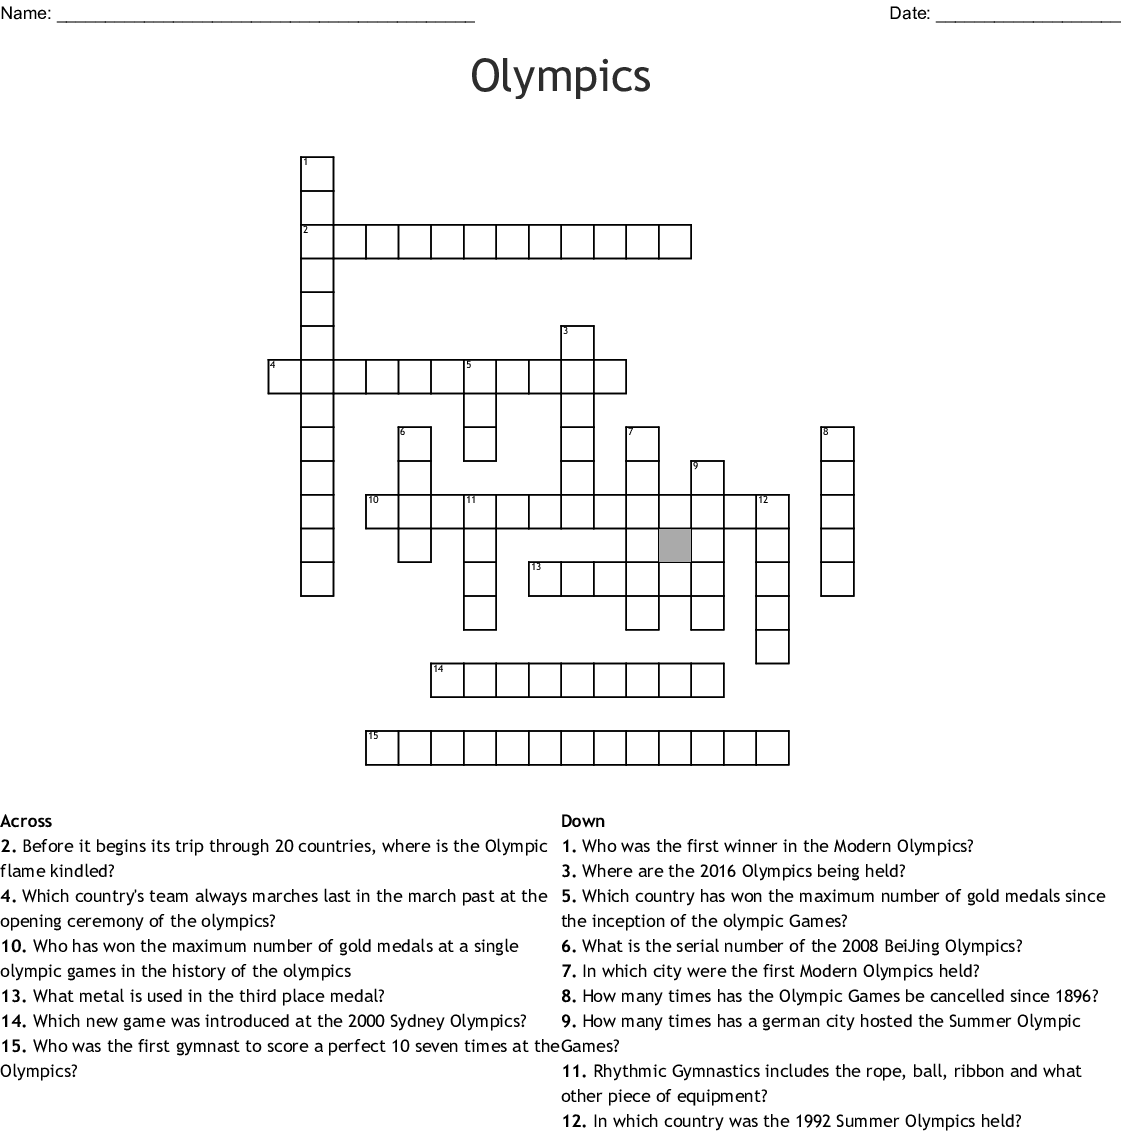 Olympics Crosswords Word Searches Bingo Cards